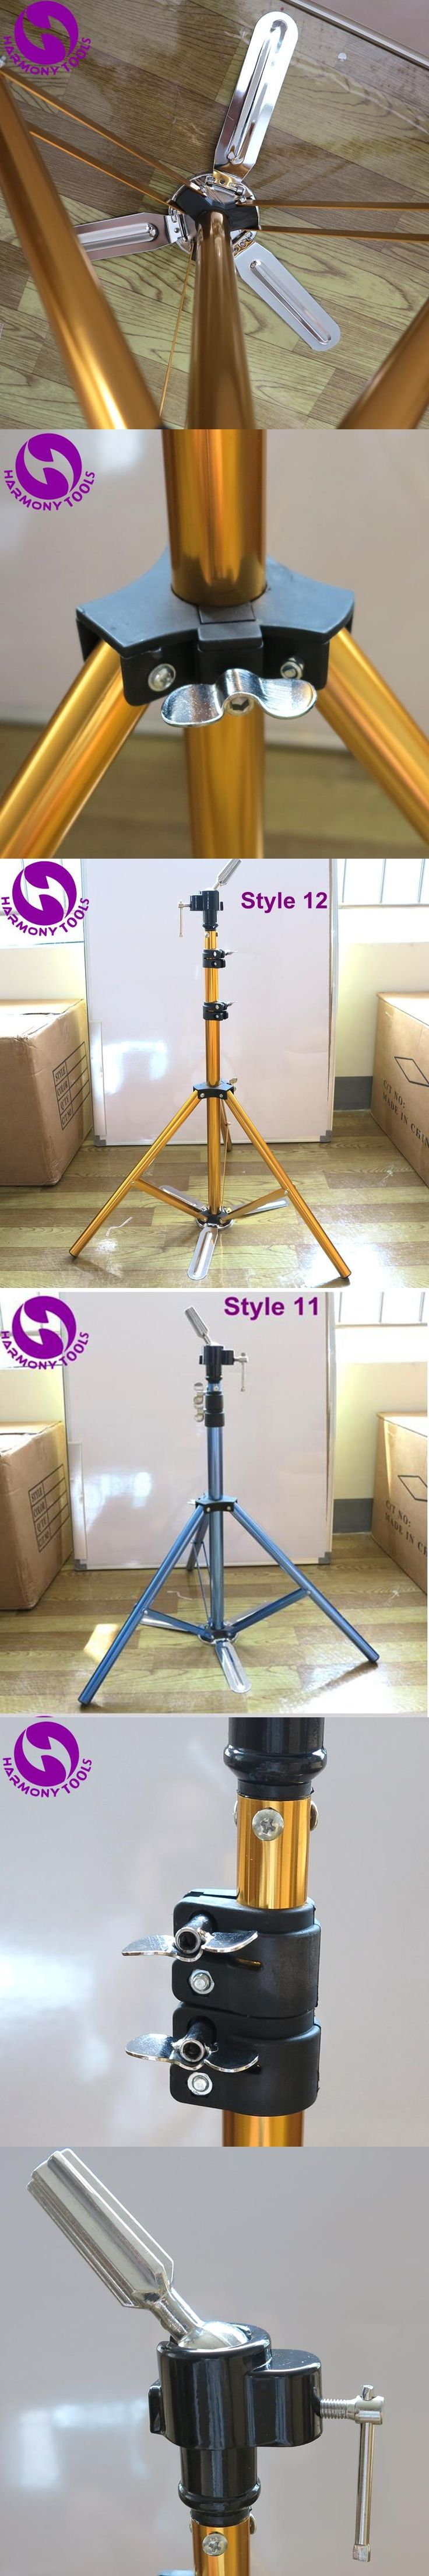 HARMONY 1 Piece Adjustable Gold Pedal Aluminum Alloy Hairdressing Training Mannequin Heads Tripod Holder Clamp Floor Stand